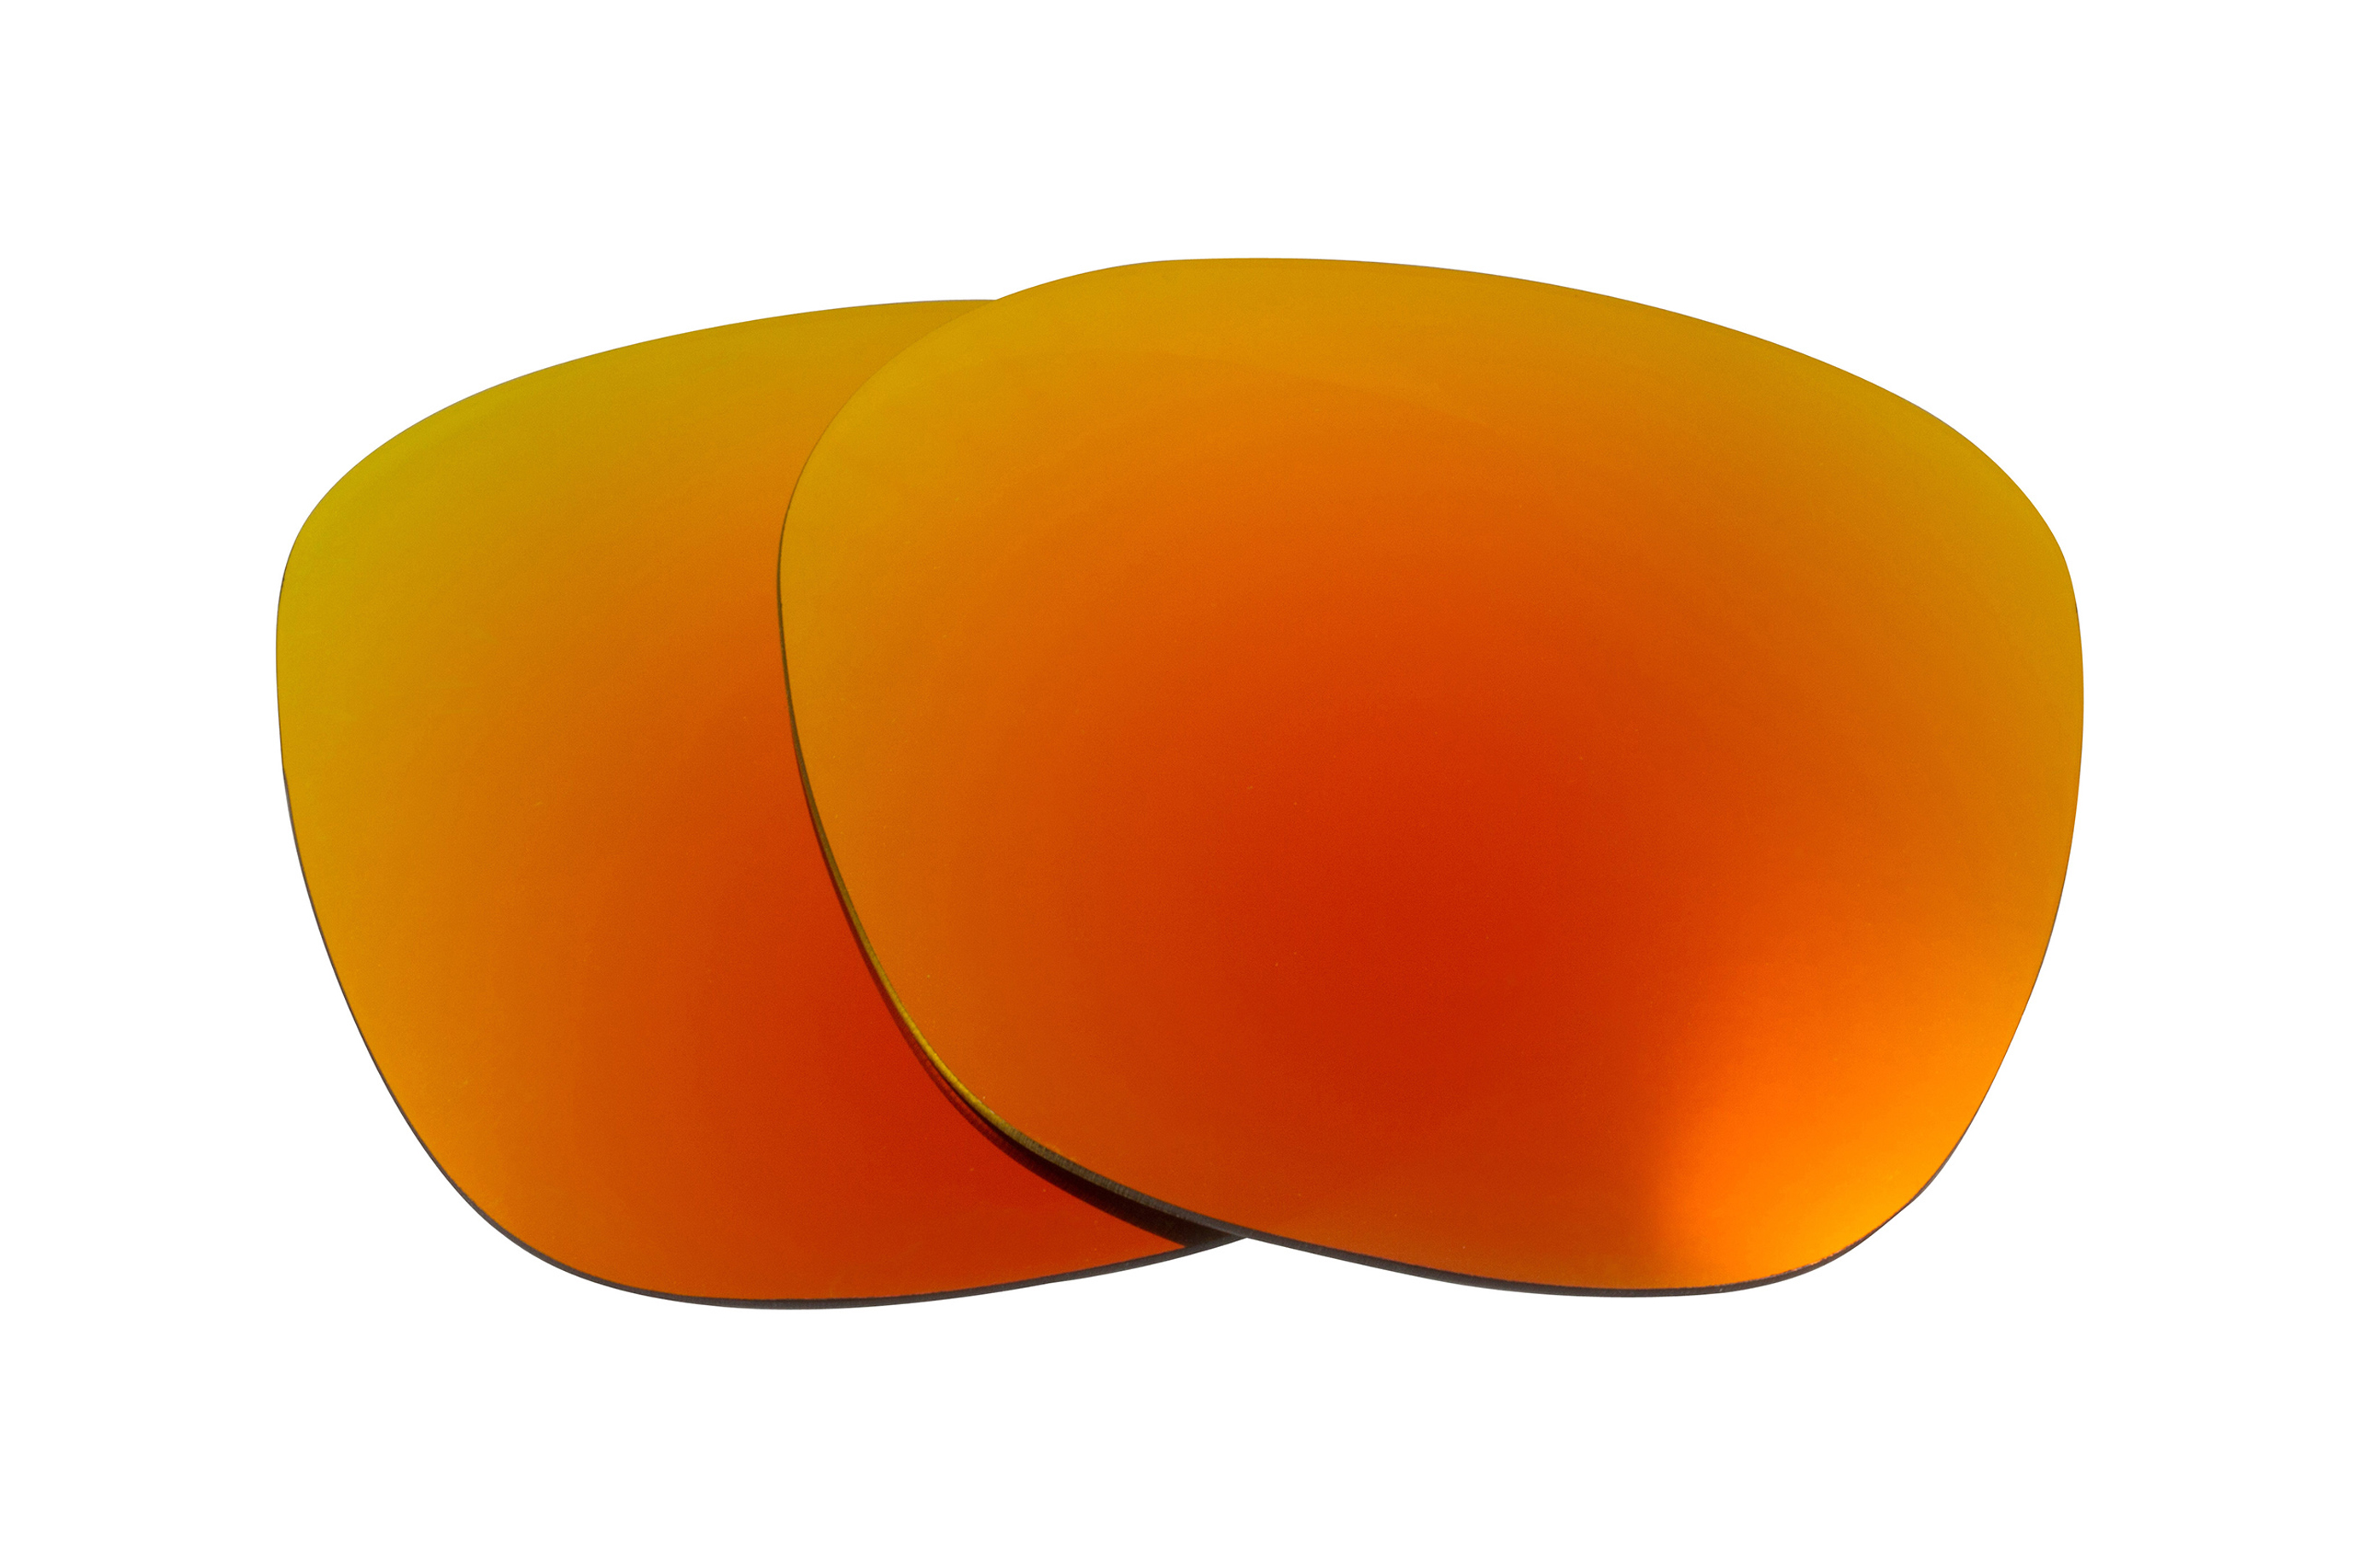 4c07fa6cdd Details about Garage Rock Replacement Lenses Yellow Mirror by SEEK fits  OAKLEY Sunglasses